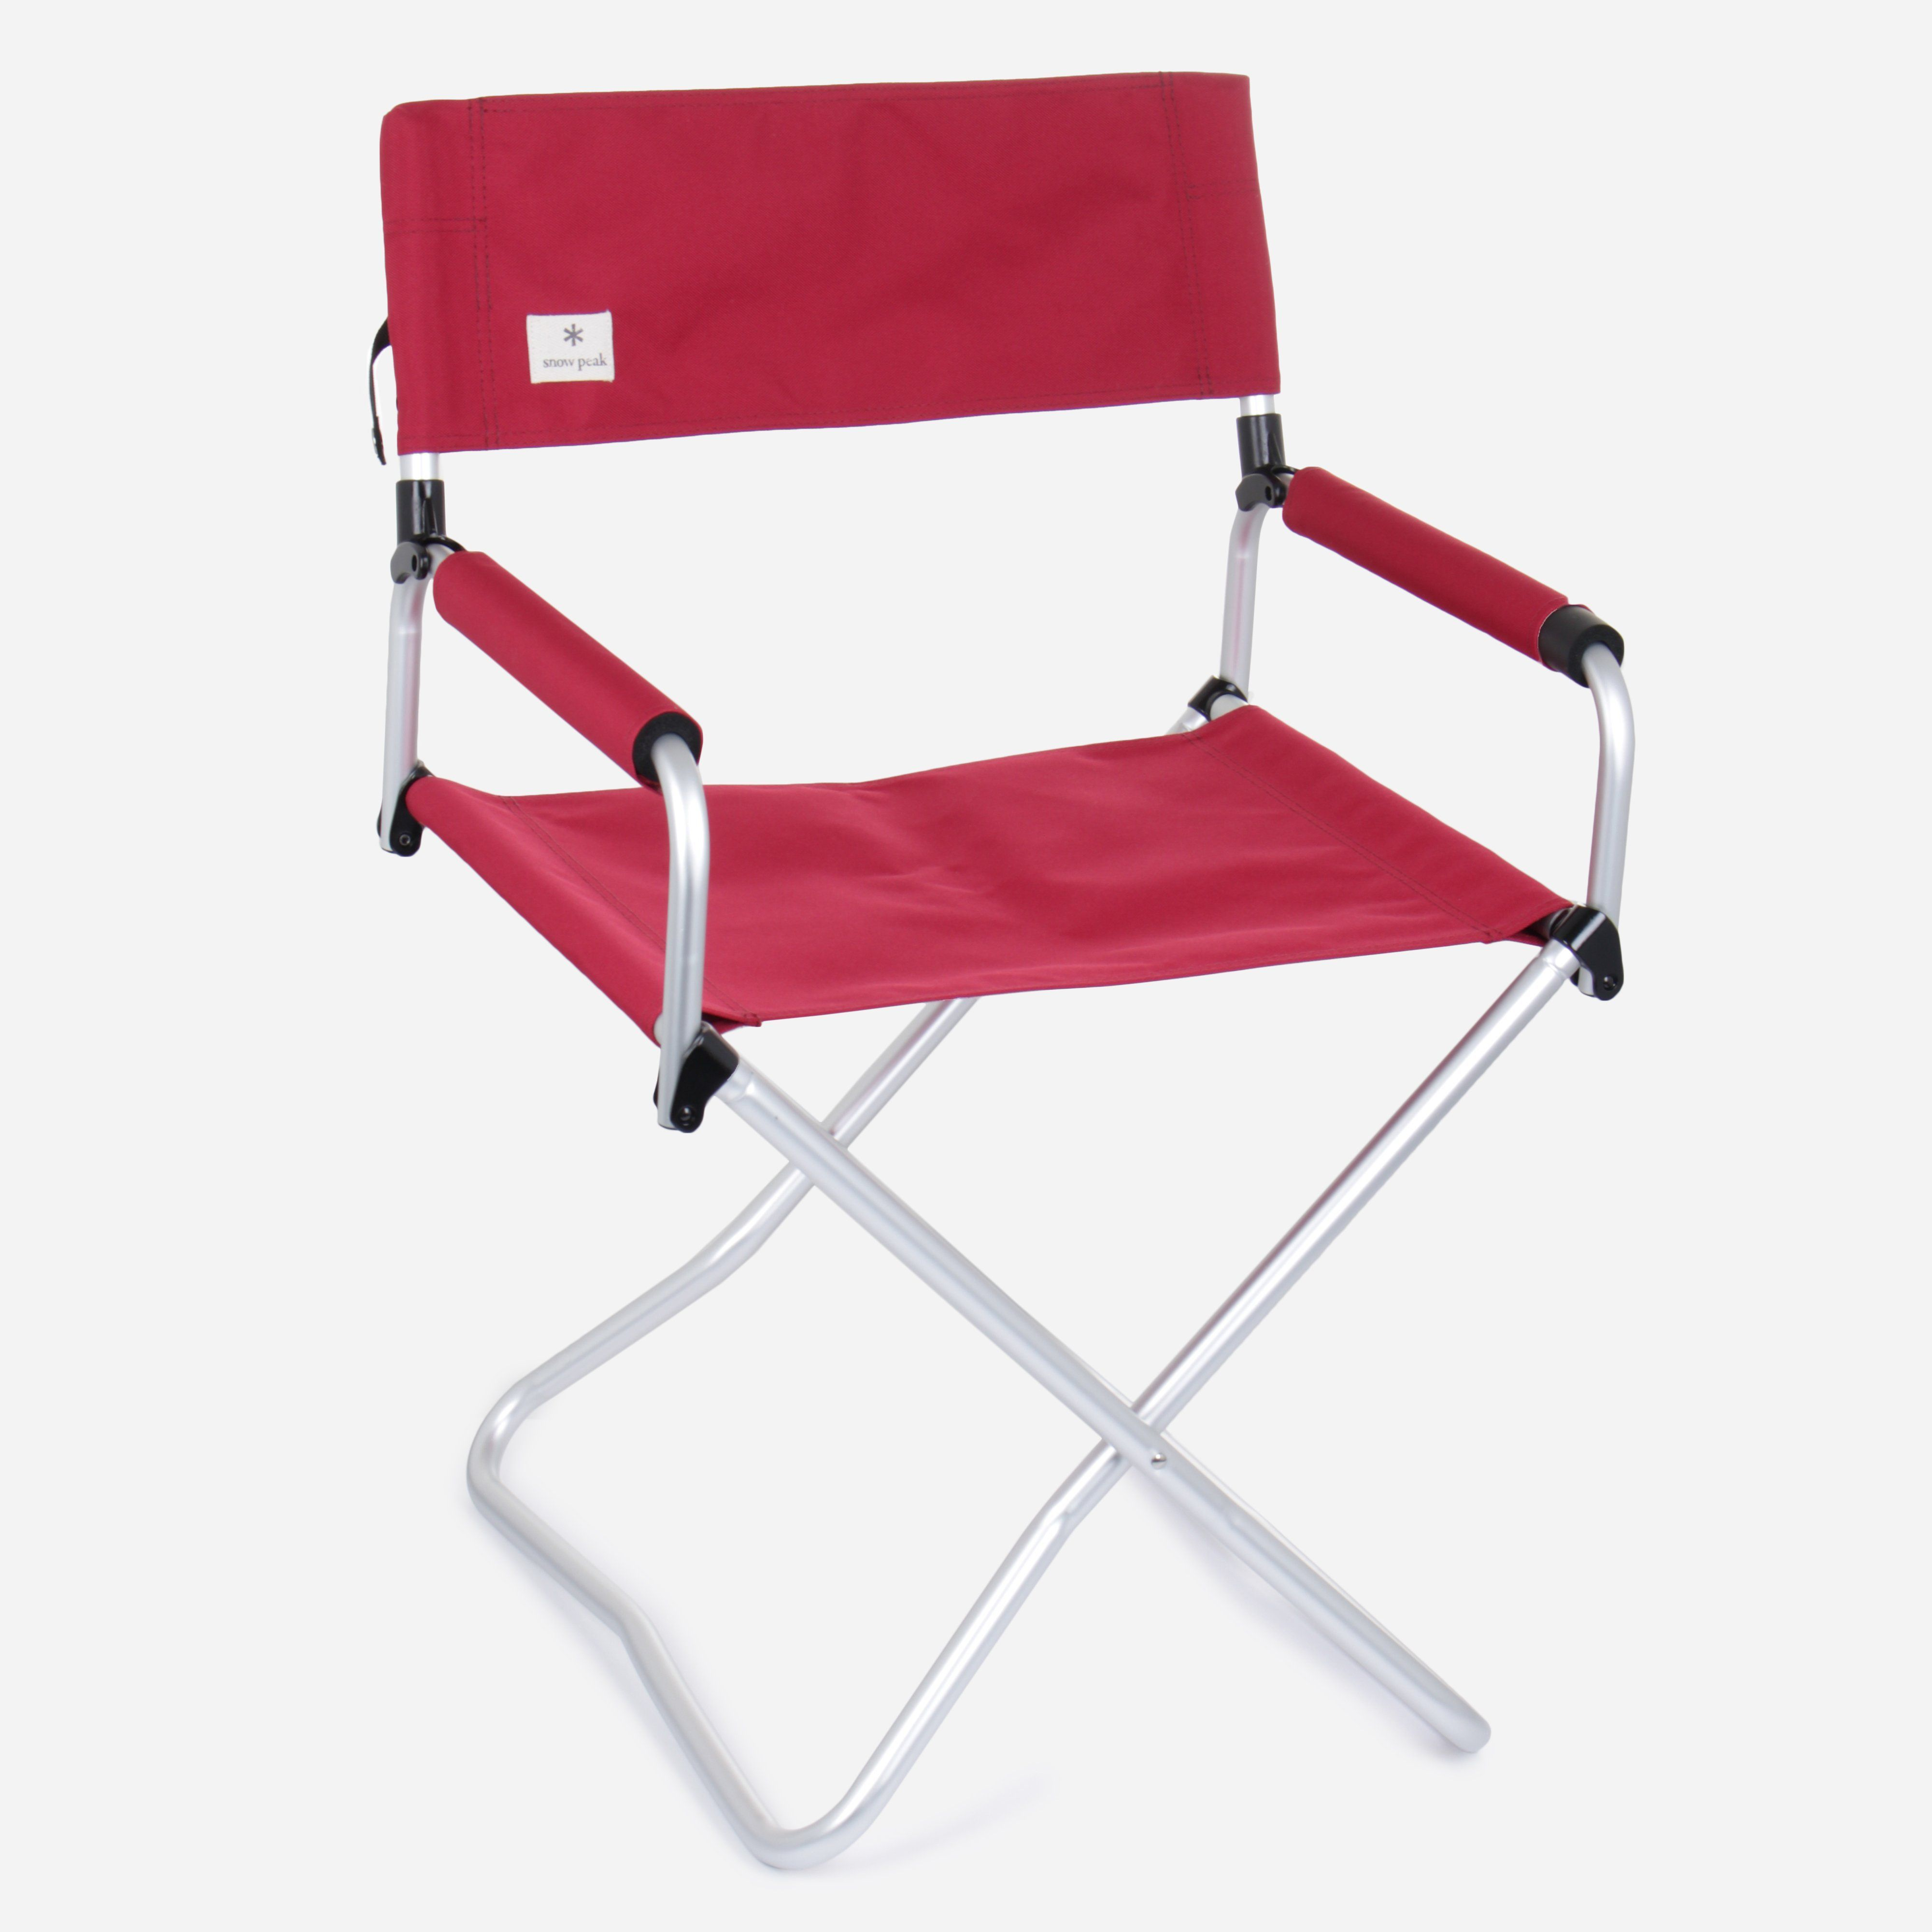 Snow Peak Folding Chair in 2019 Folding chair, Hip store